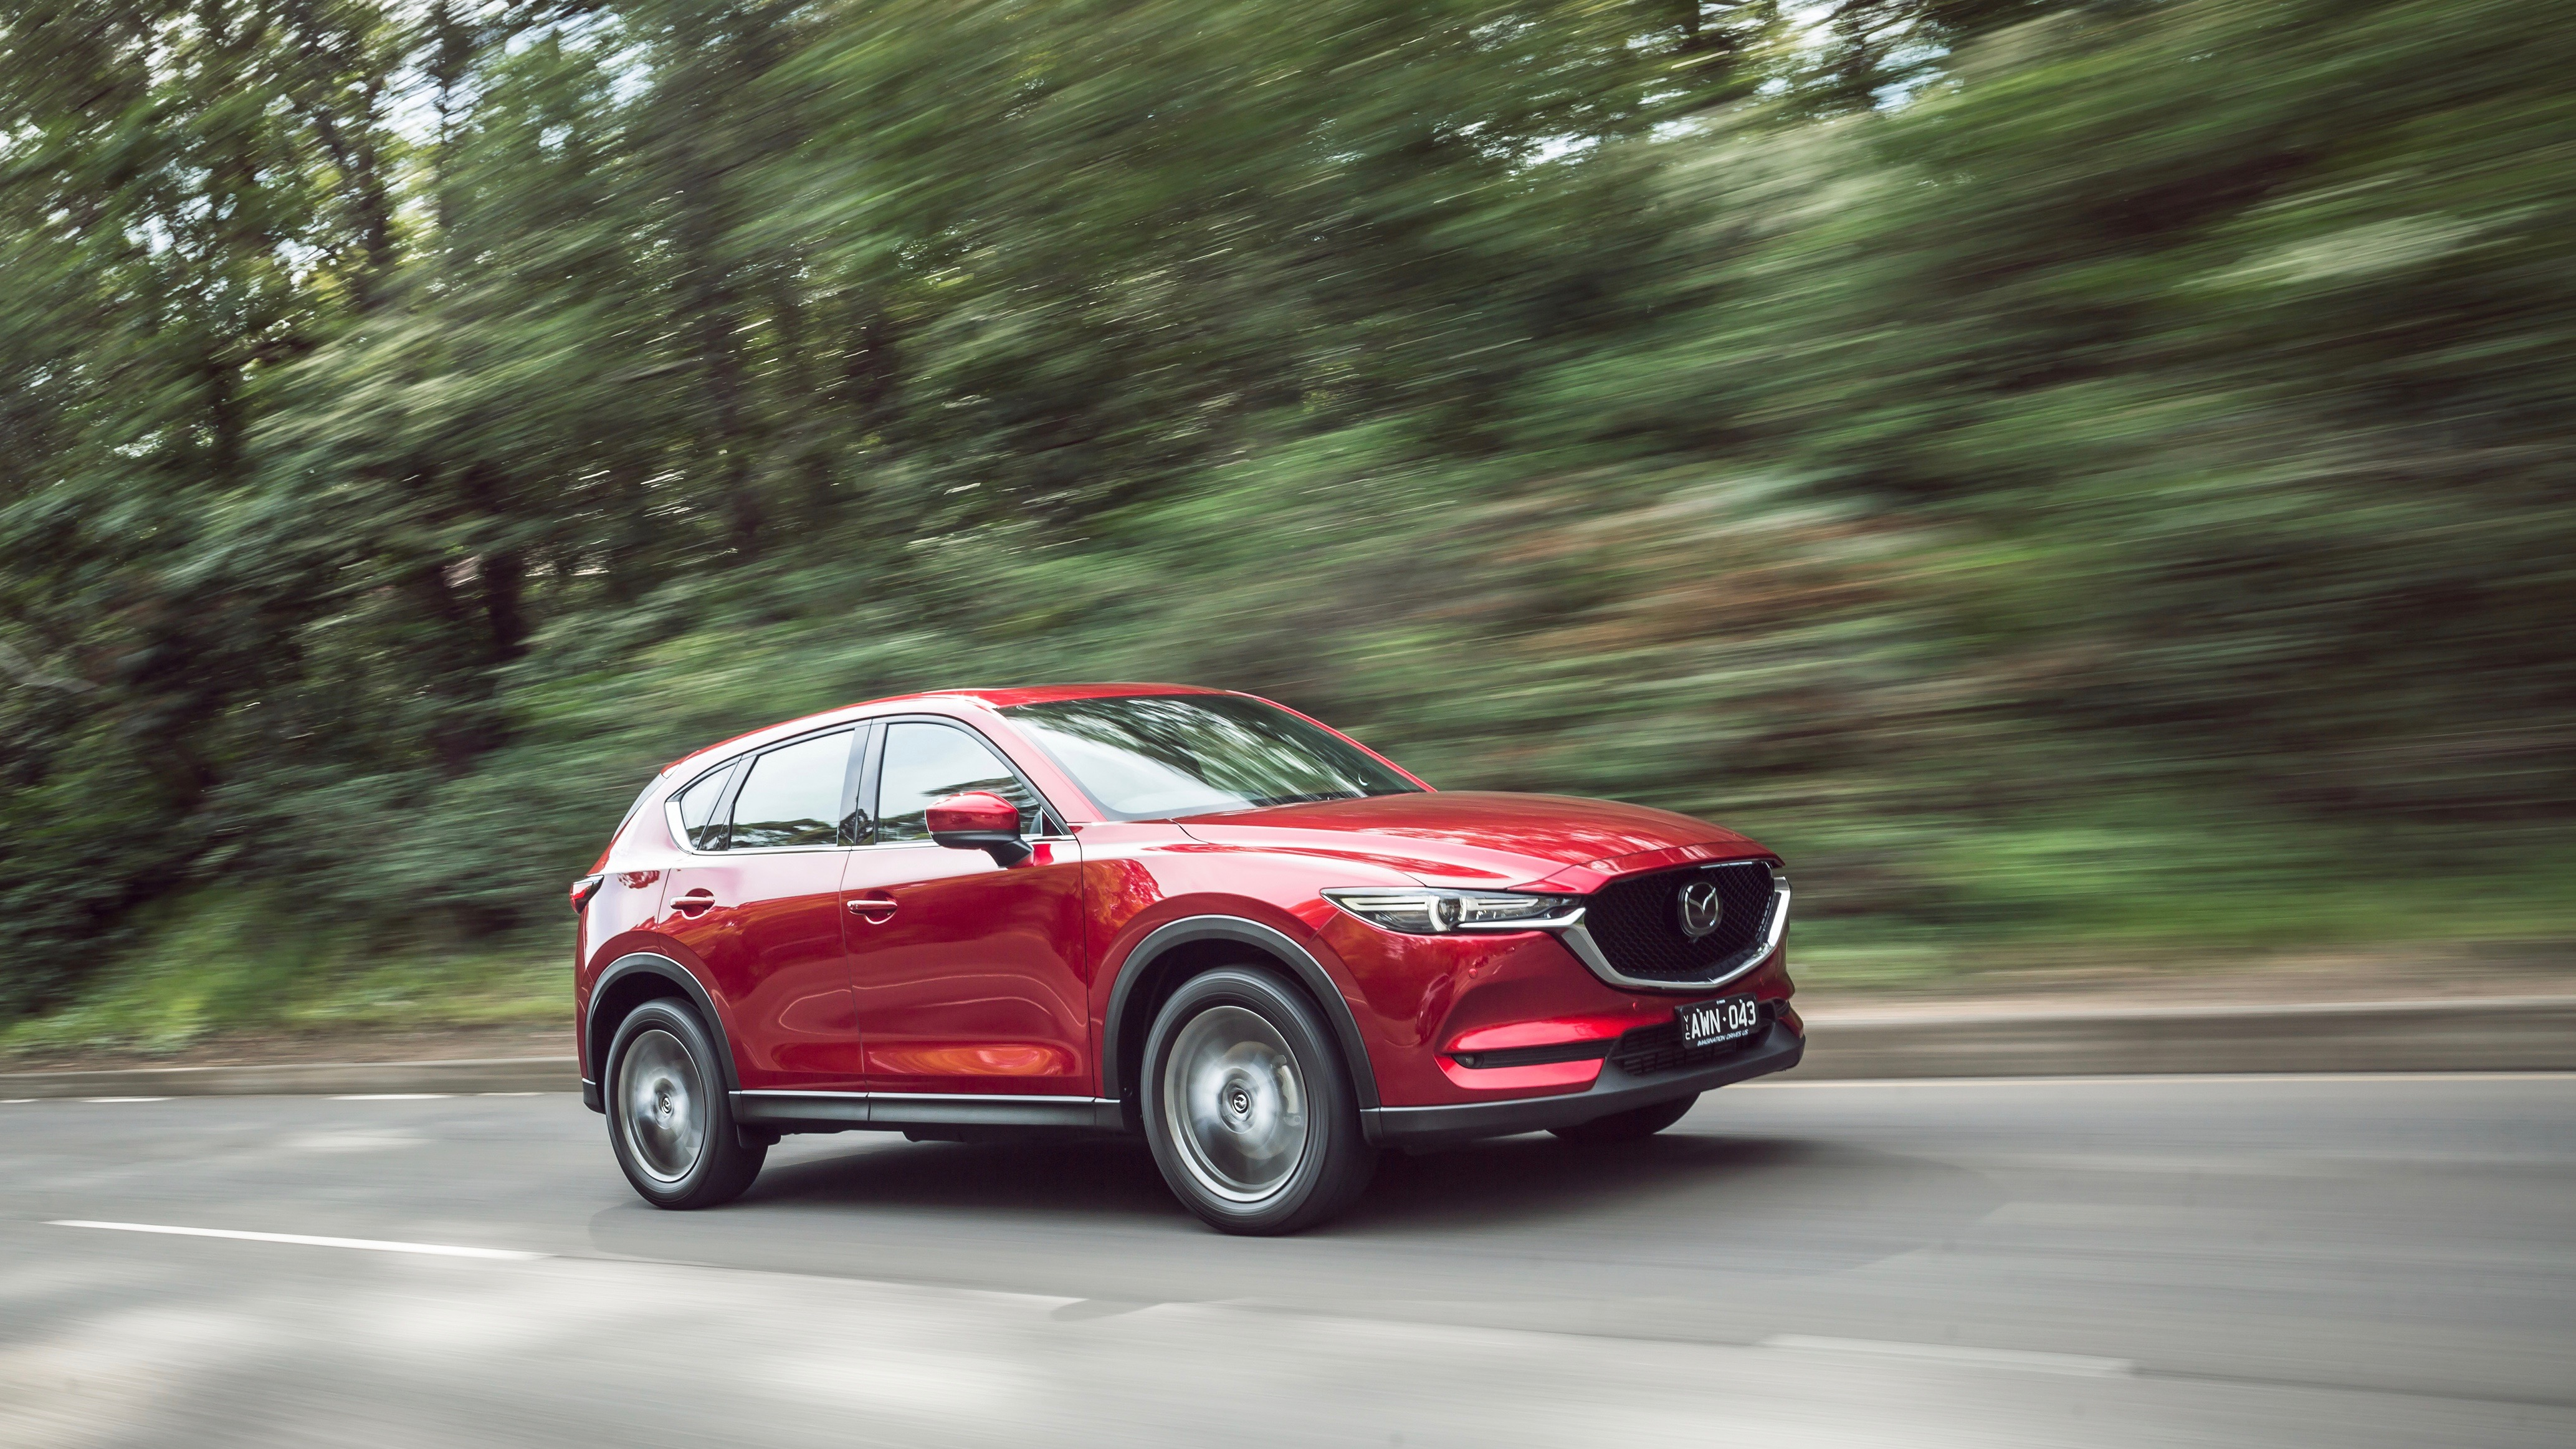 2019 Mazda CX-5 Akera Soul Red Crystal front 3/4 driving